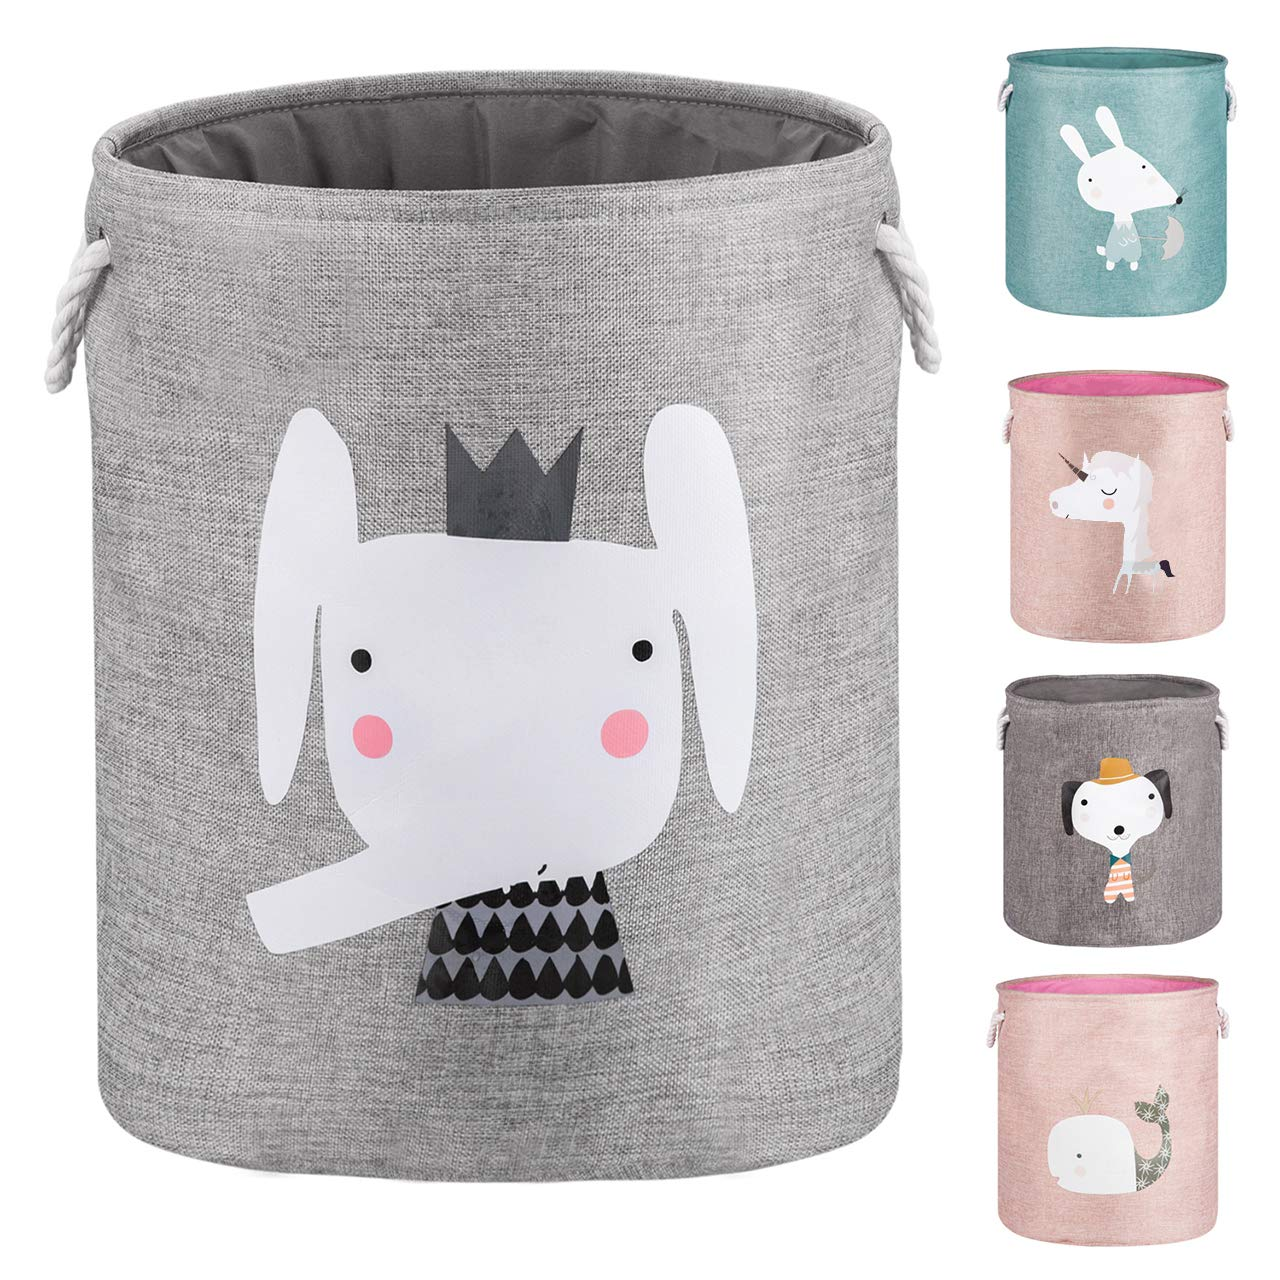 "AXHOP 22"" Upgrade Large Collapsible Laundry Basket with Lid, Toy Storage Baskets Bin for Kids, Dog, Toys, Blanket, Clothes, Cute Animal Laundry Hamper (Grey Elephant)"